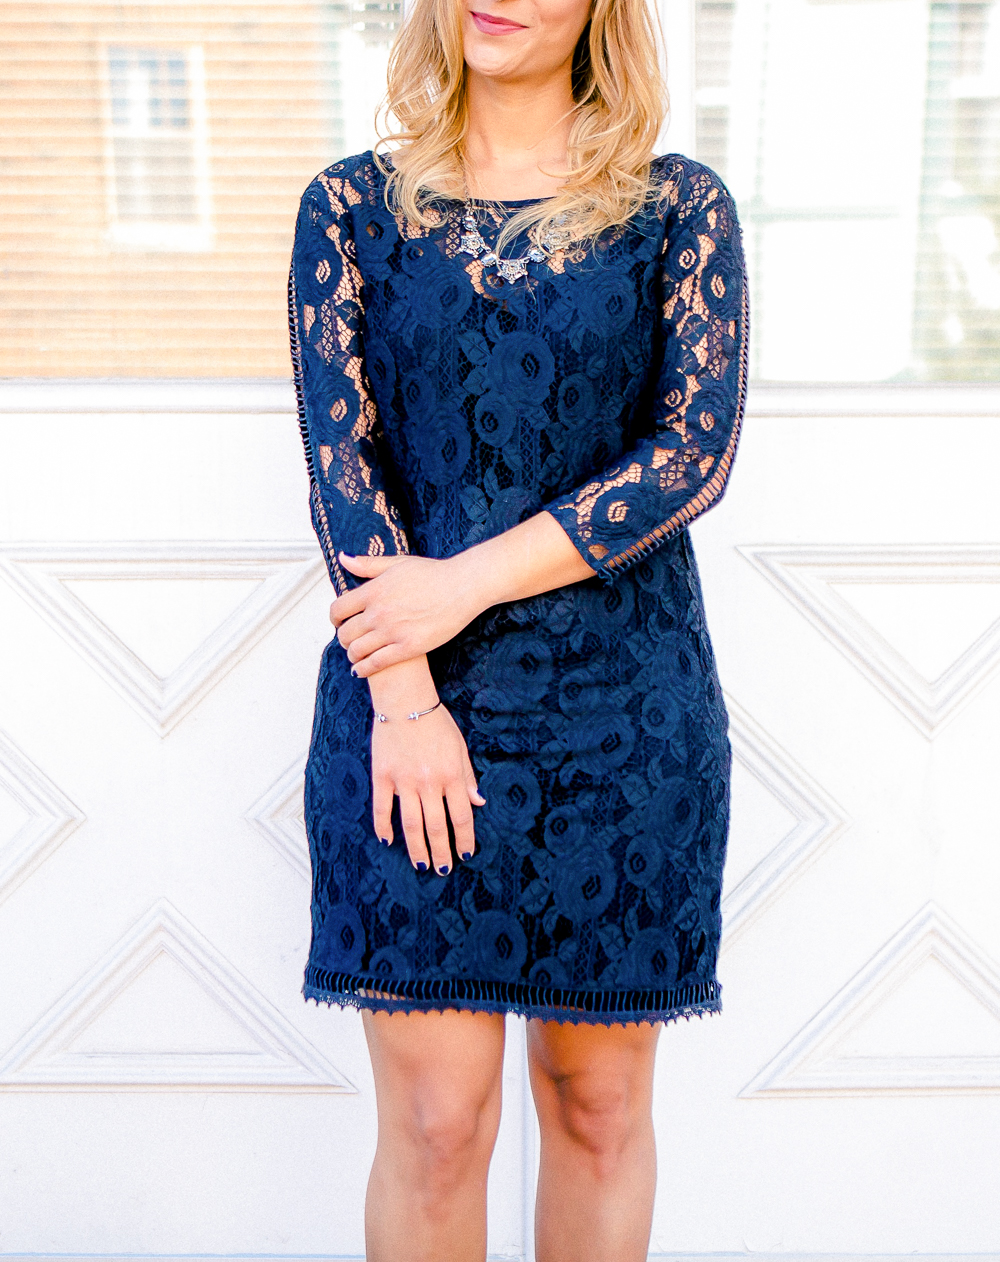 Fall style ideas - Gentle Fawn Lace Dress